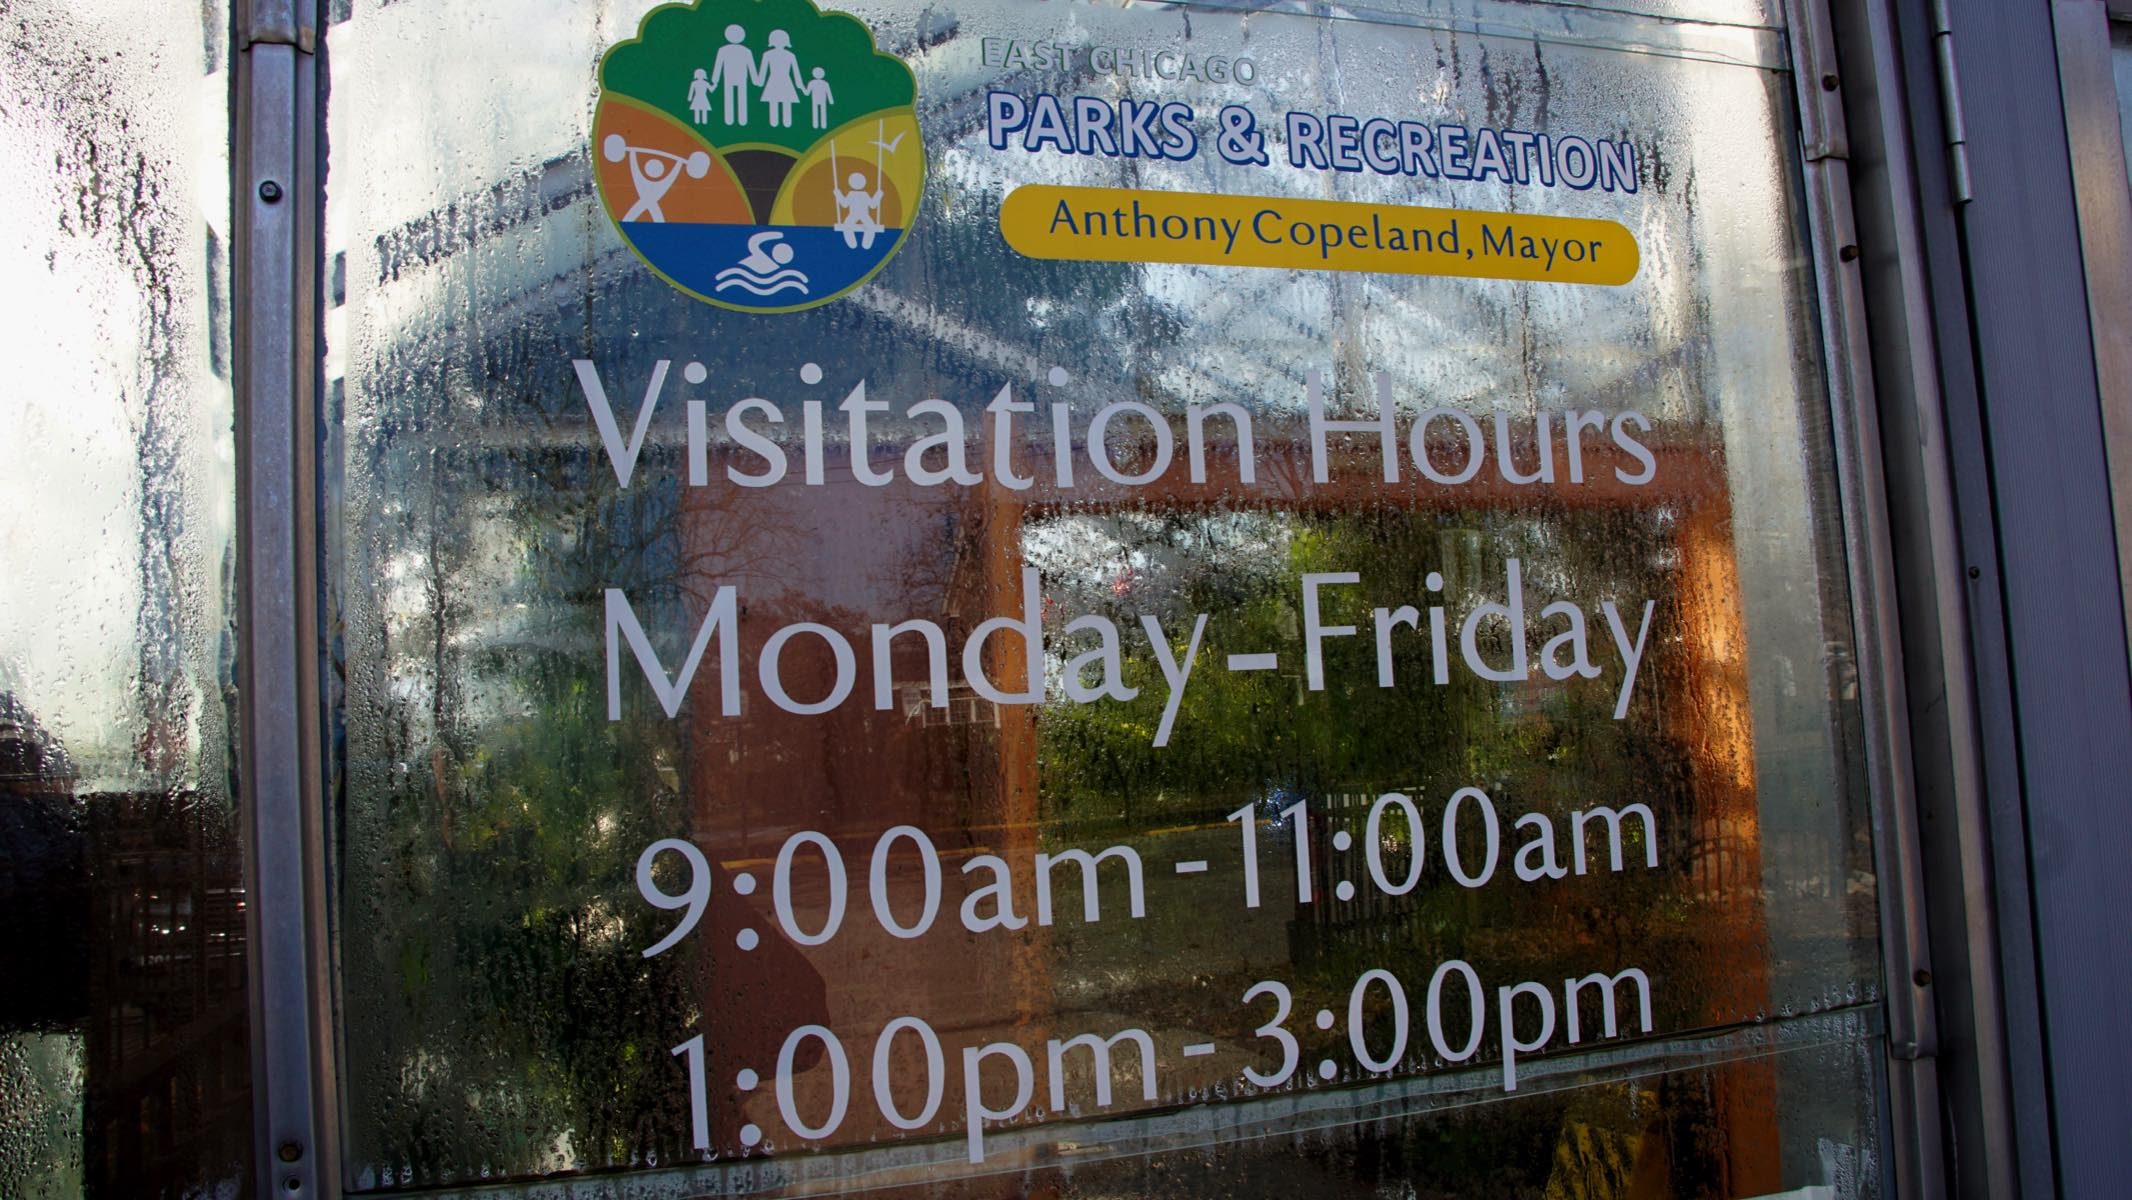 Visitation Hours Posted on the Front Door - Monday through Friday, 9 to 11 a.m. and 1 to 3 p.m.